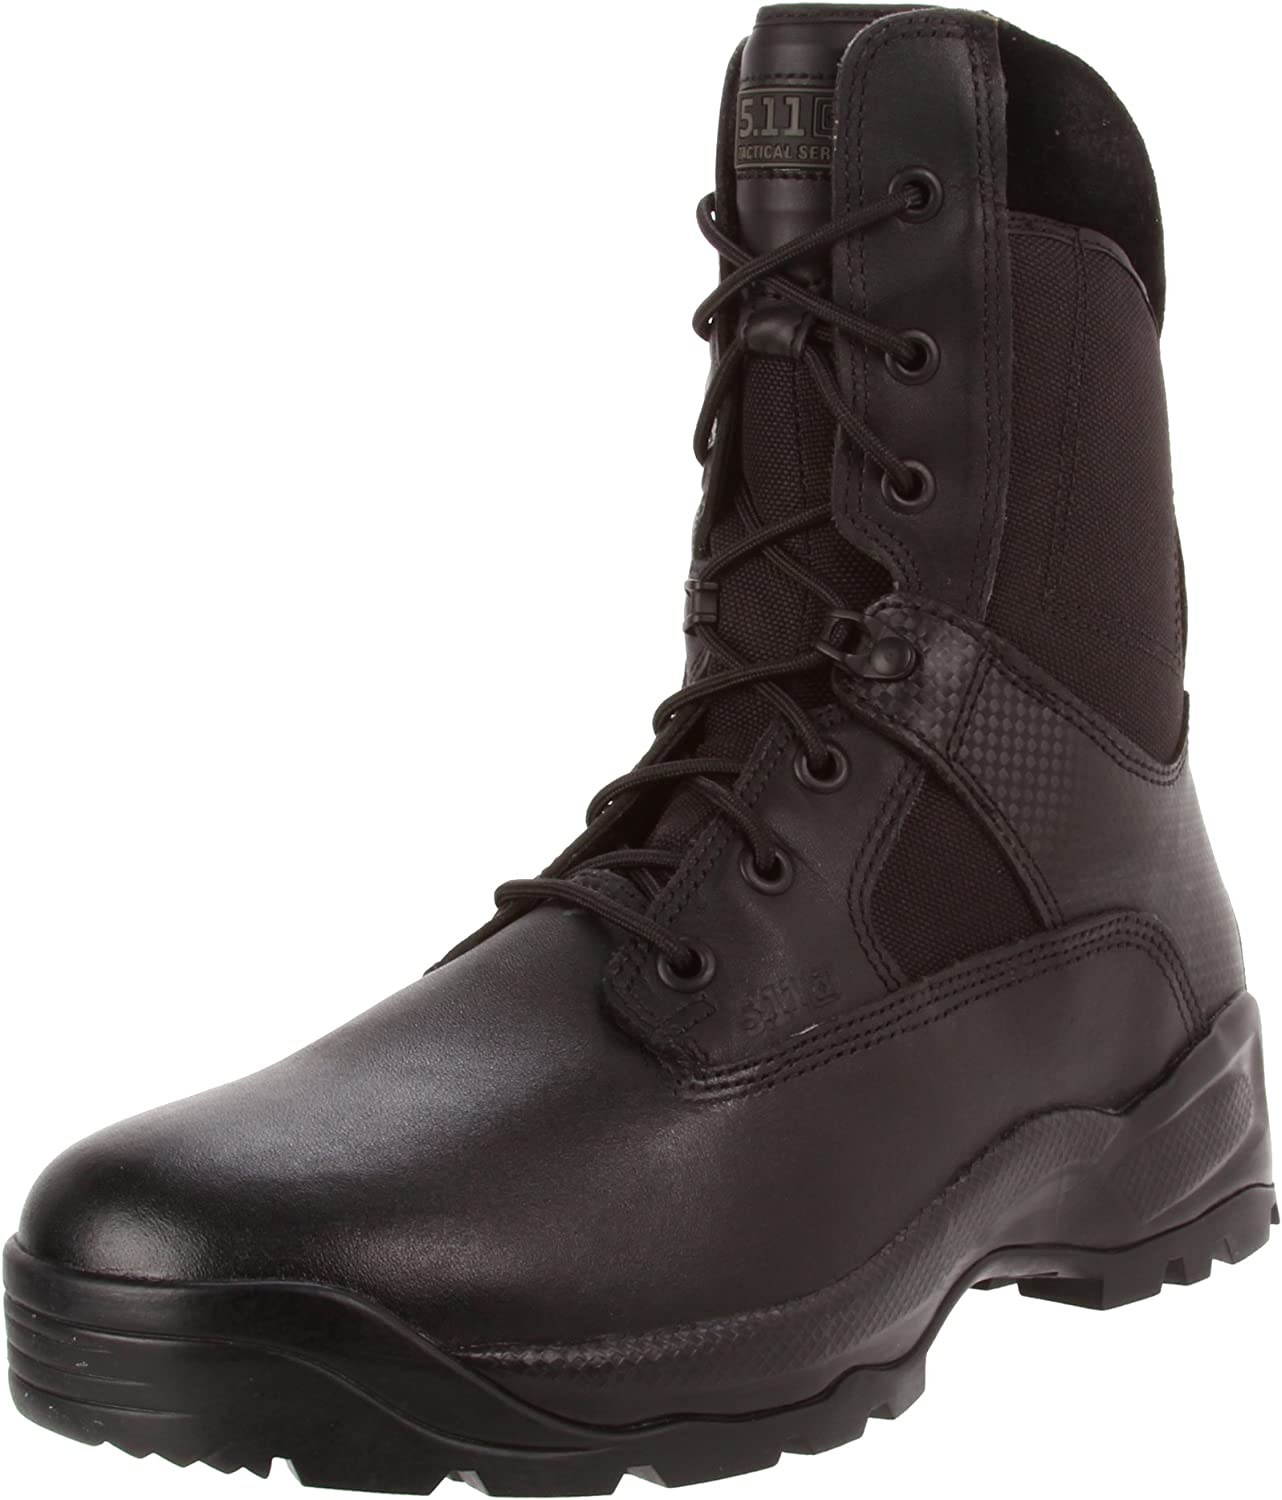 """5.11 Tactical ATAC Men's 8"""" Leather Jungle Combat Military Coyote Boots, Style 12110"""